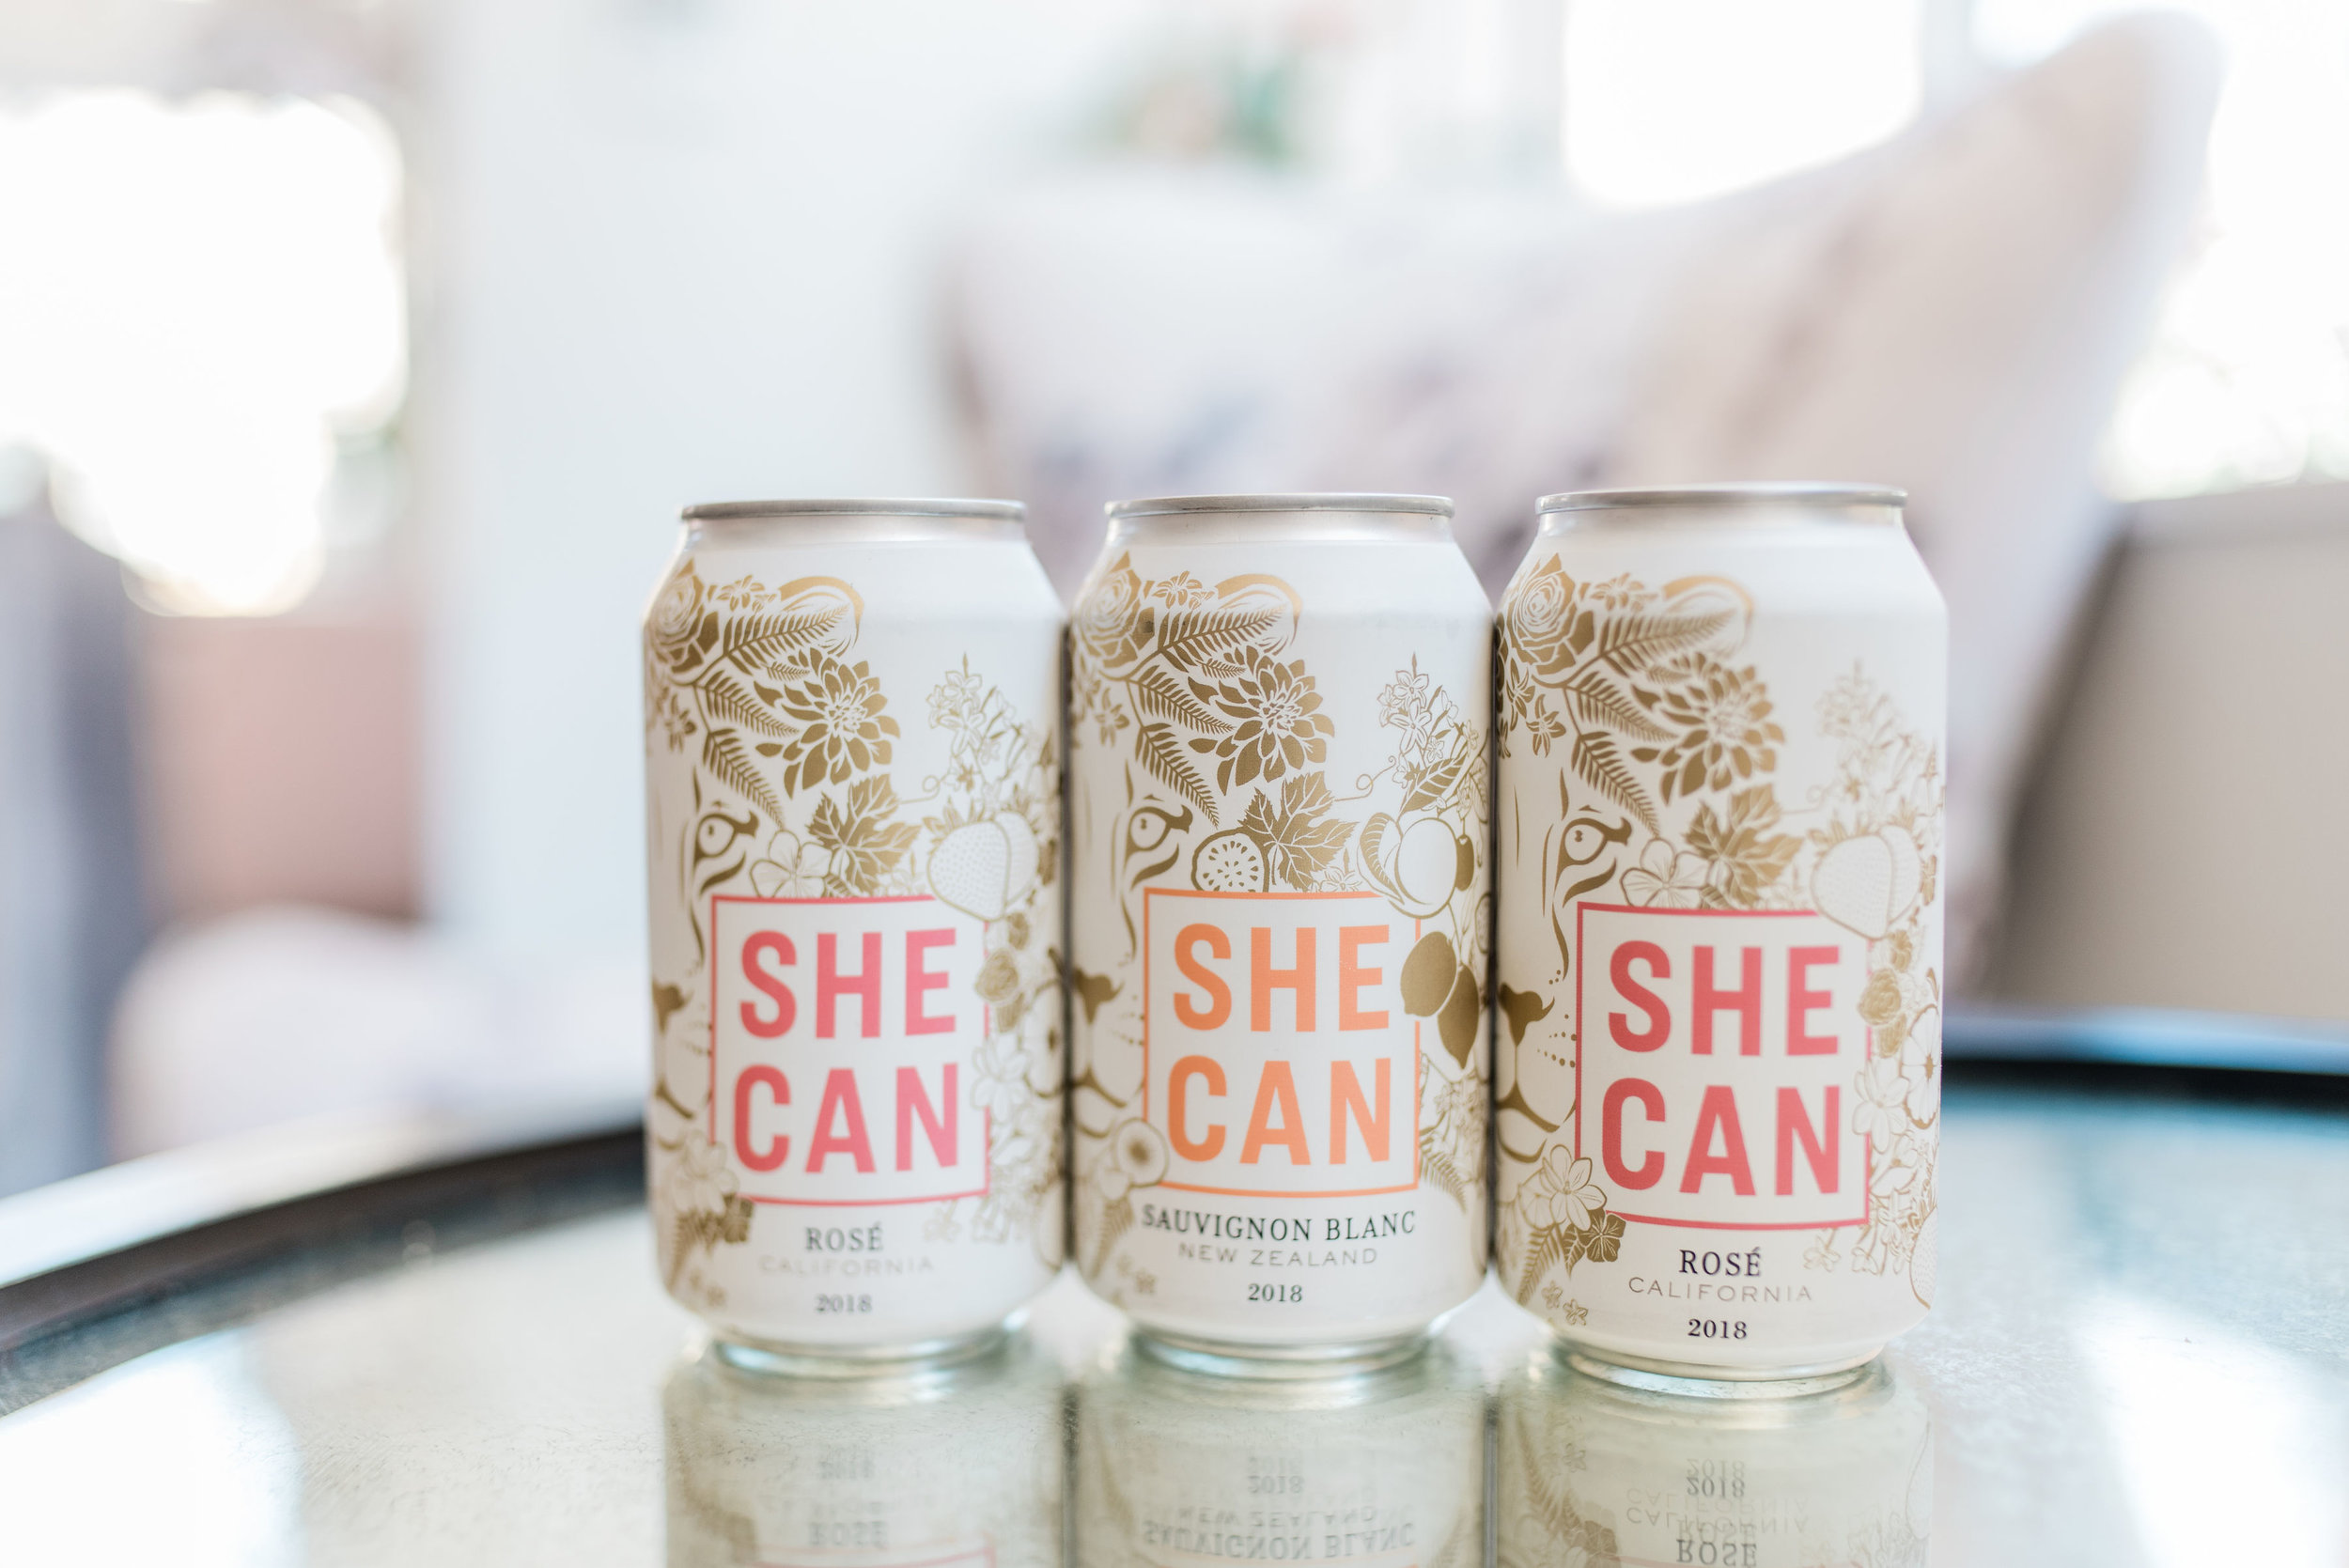 SHE CAN: Embrace the can, empower her path!